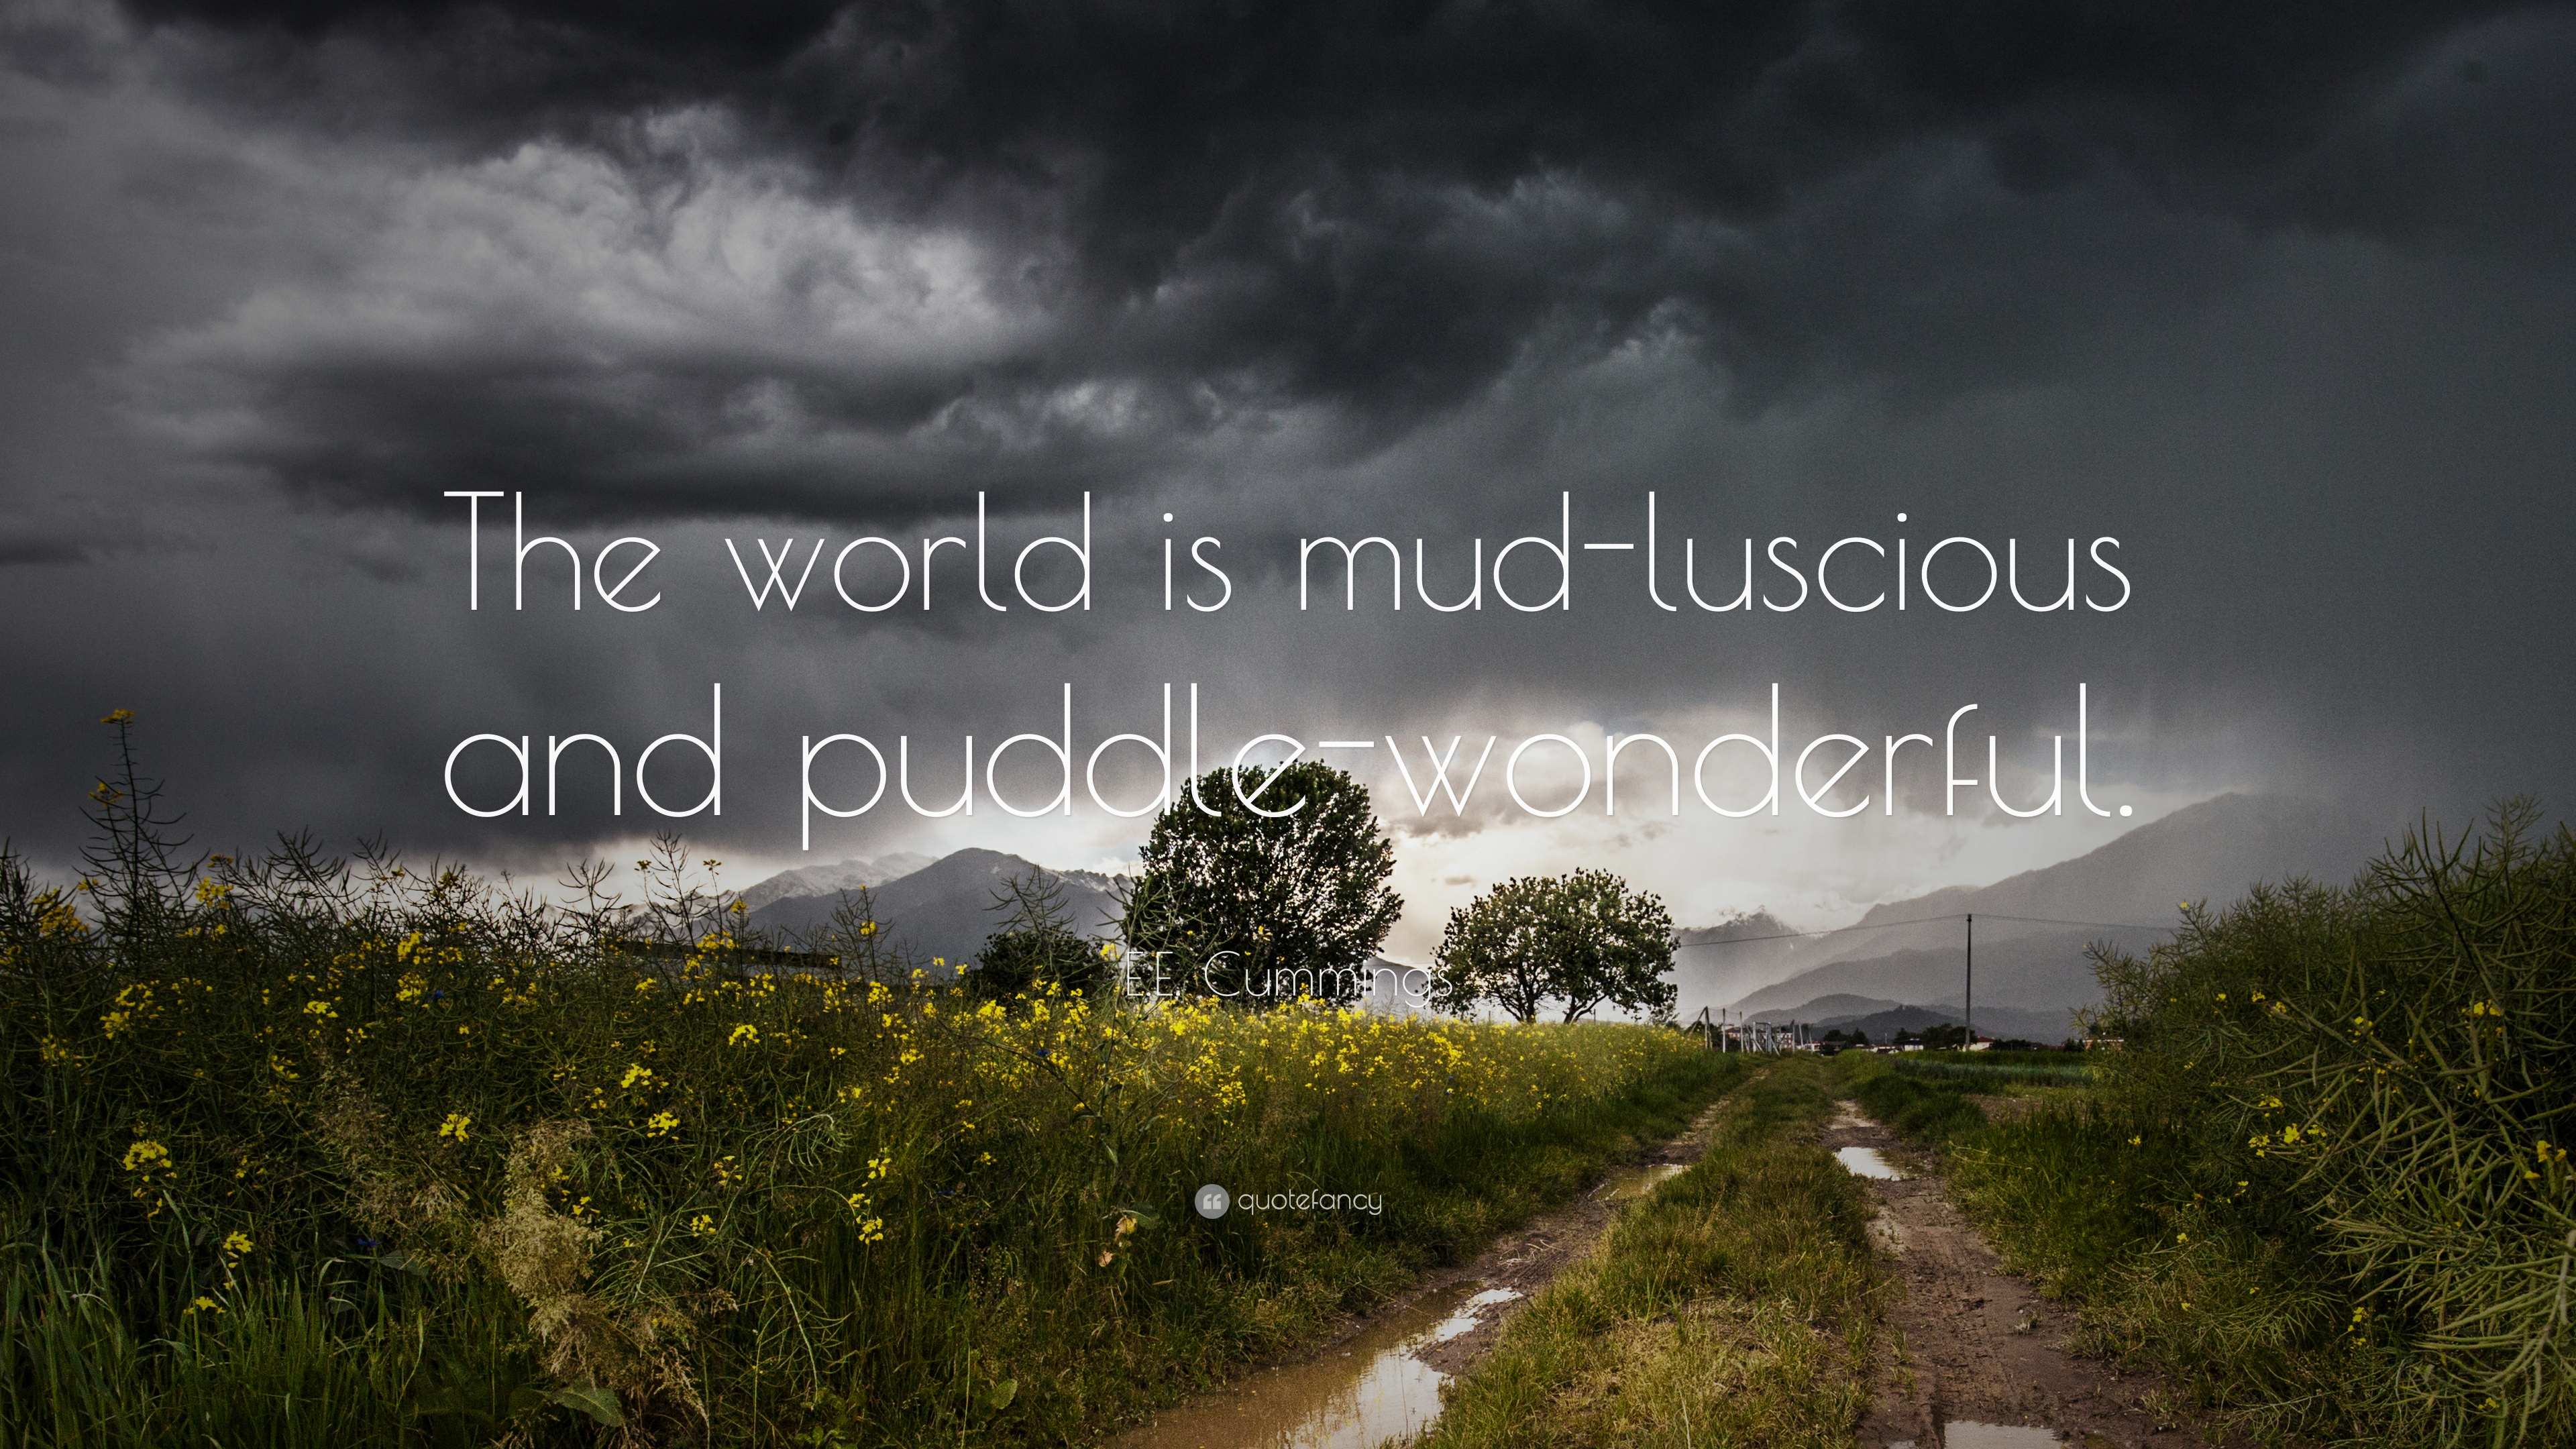 Ee Cummings Quote The World Is Mud Luscious And Puddle Wonderful